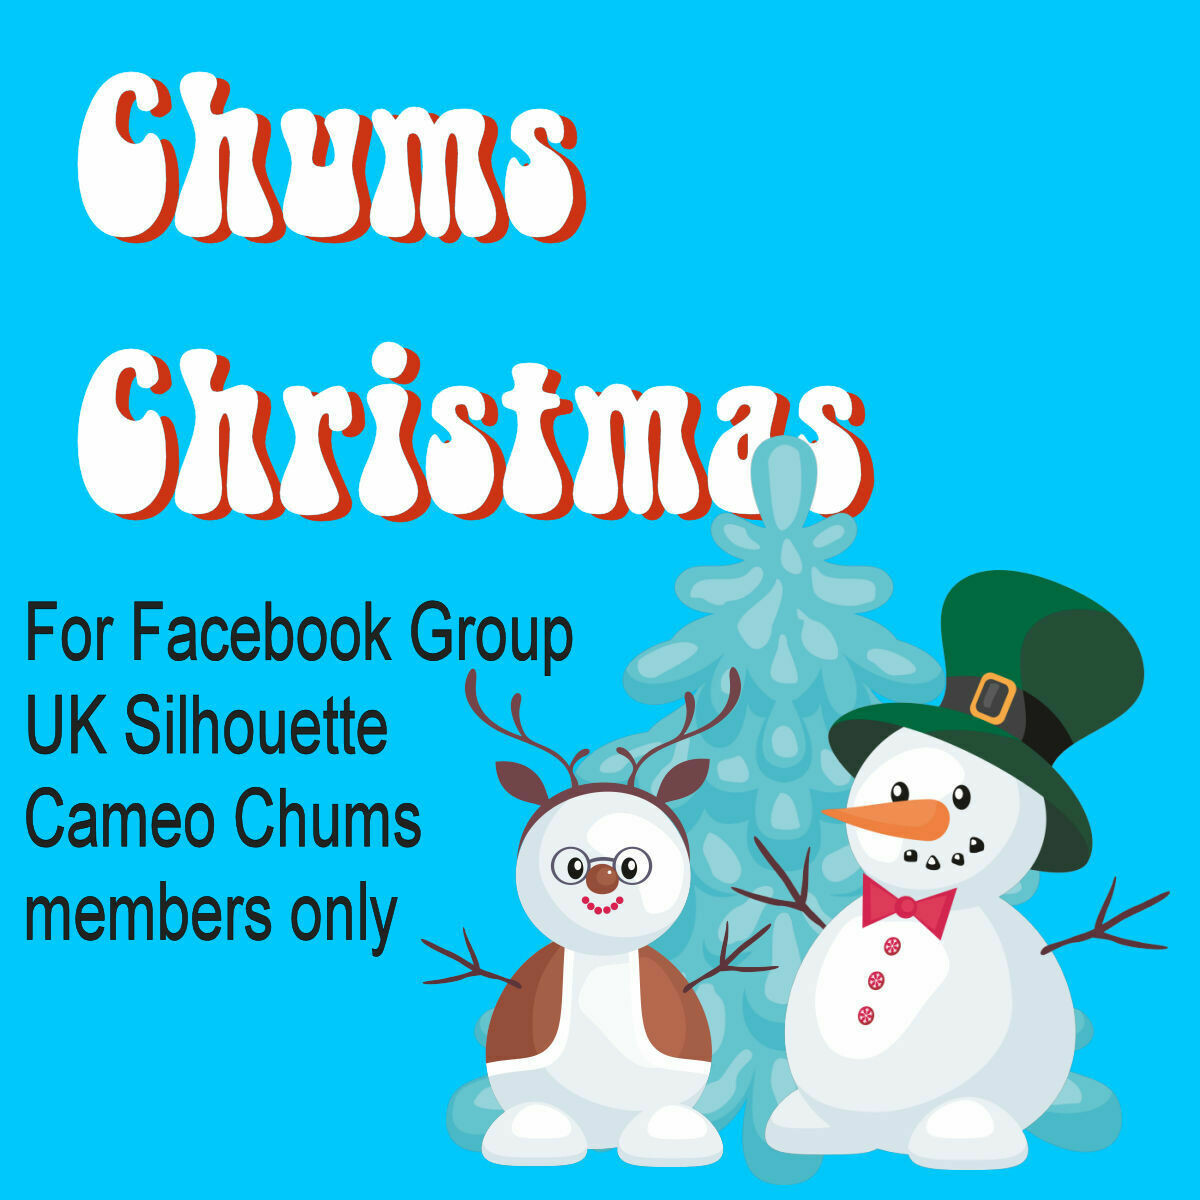 1 ticket for Christmas Facebook Group UK Silhouette Cameo Chums group members only